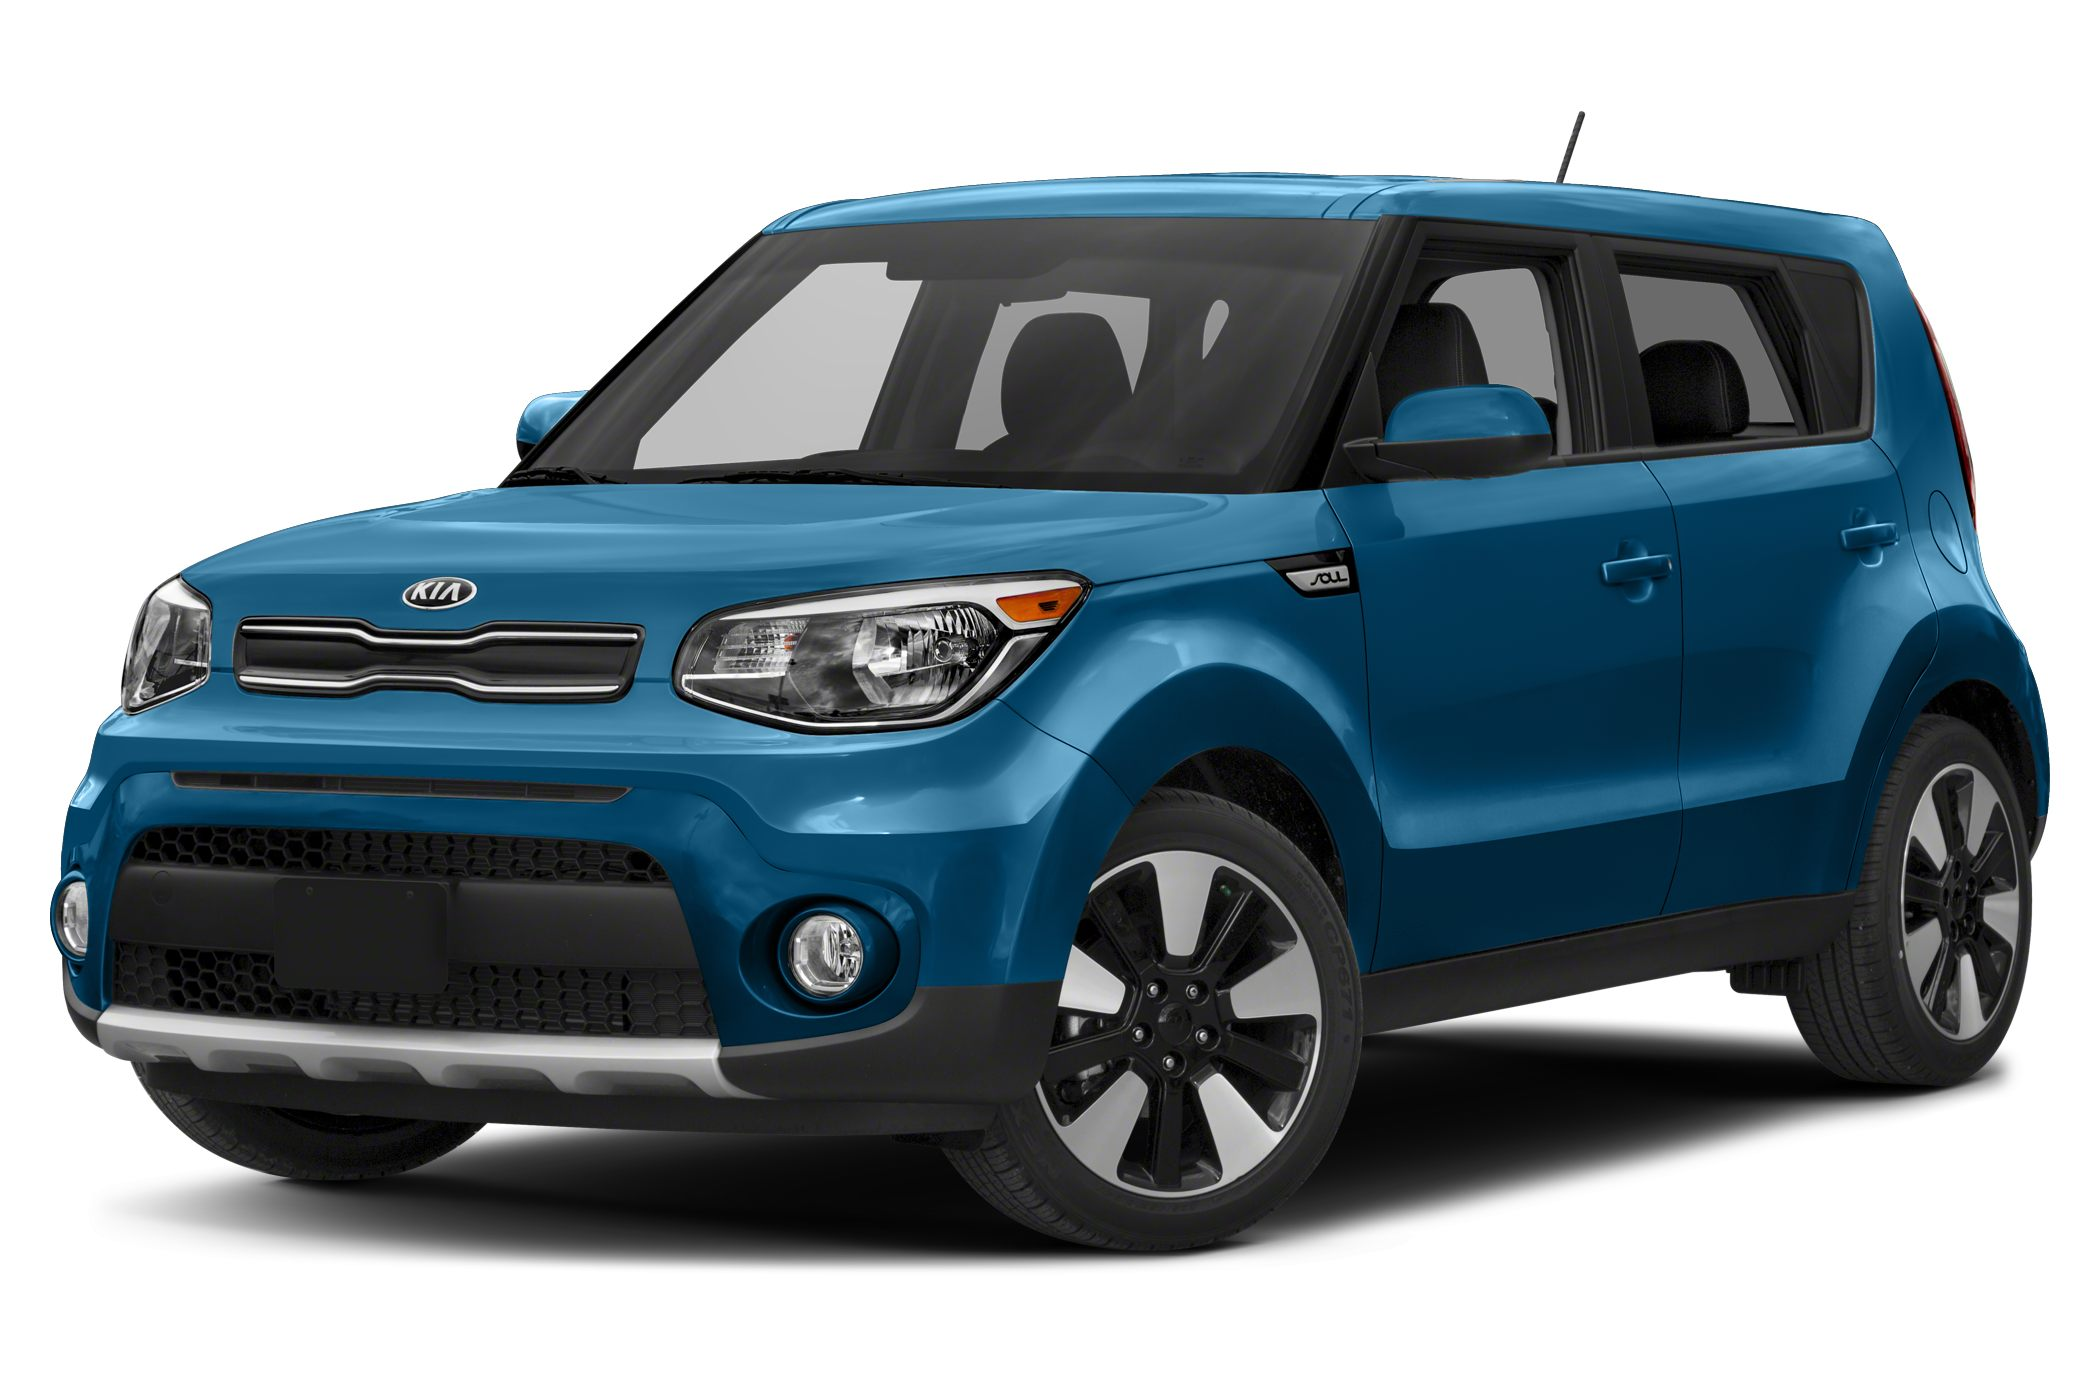 rugged ster trail concept ignitionlive trailster kia rack soul roof